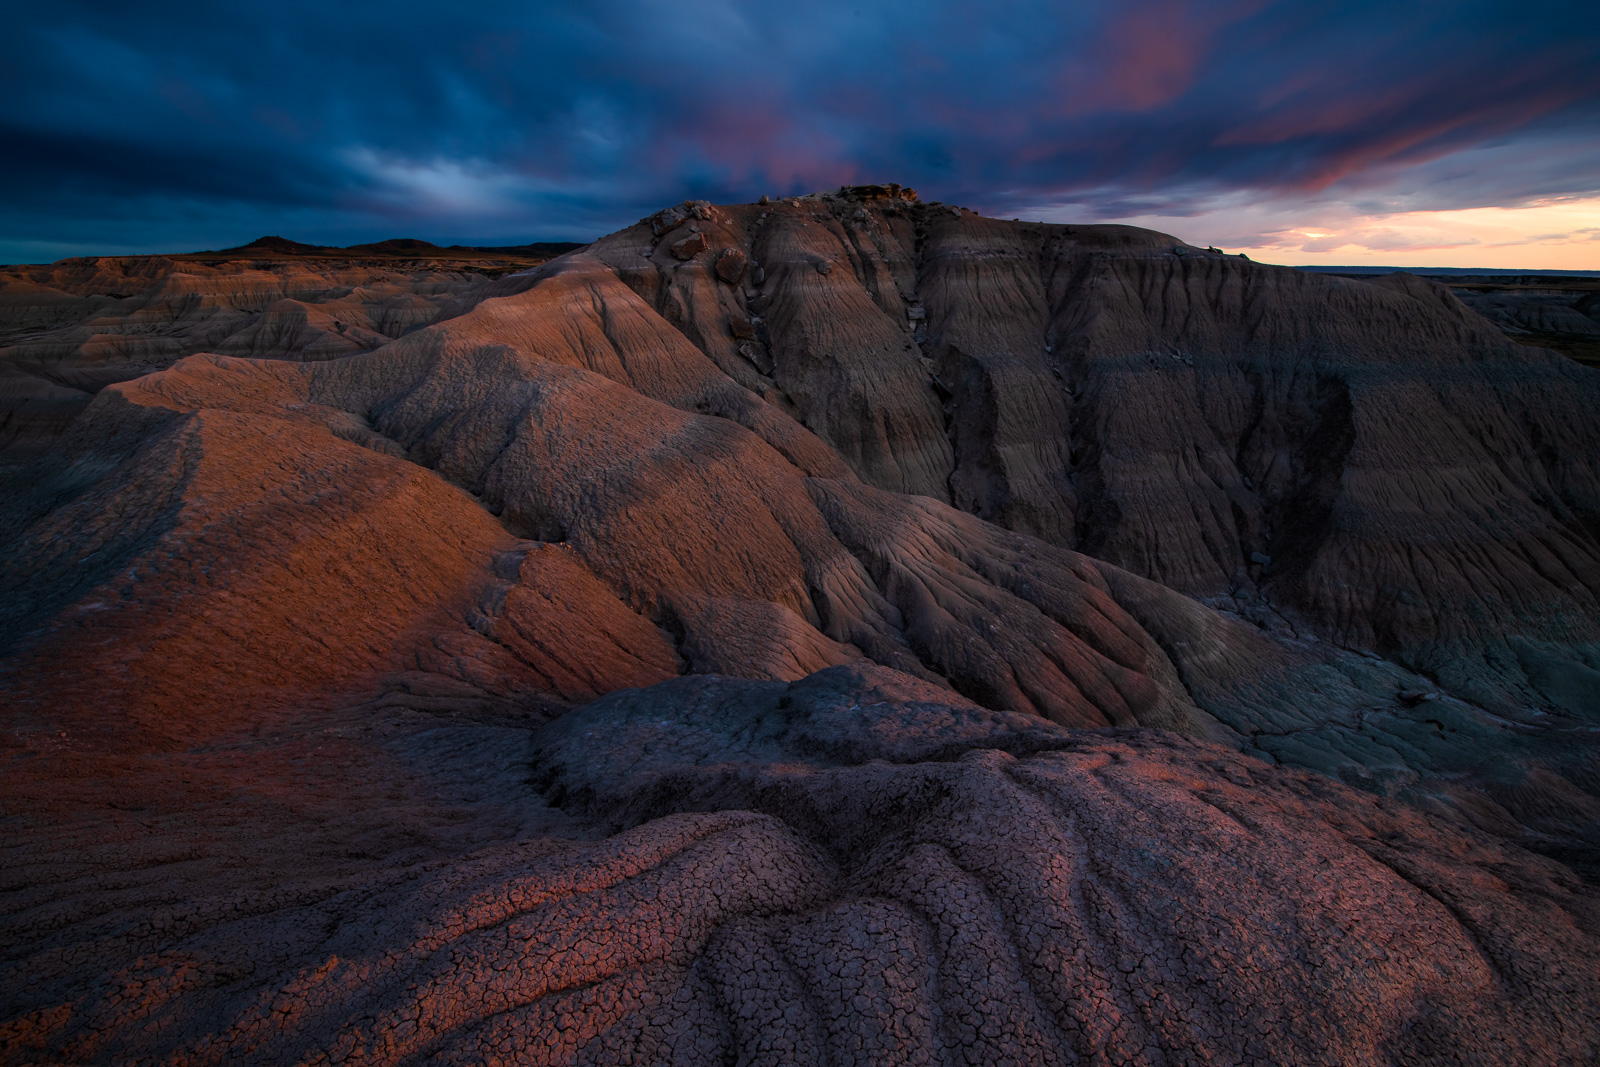 A dramatic sunset over the Badlands of Toadstool Geoligic Park in the Northwest corner of Nebraska.